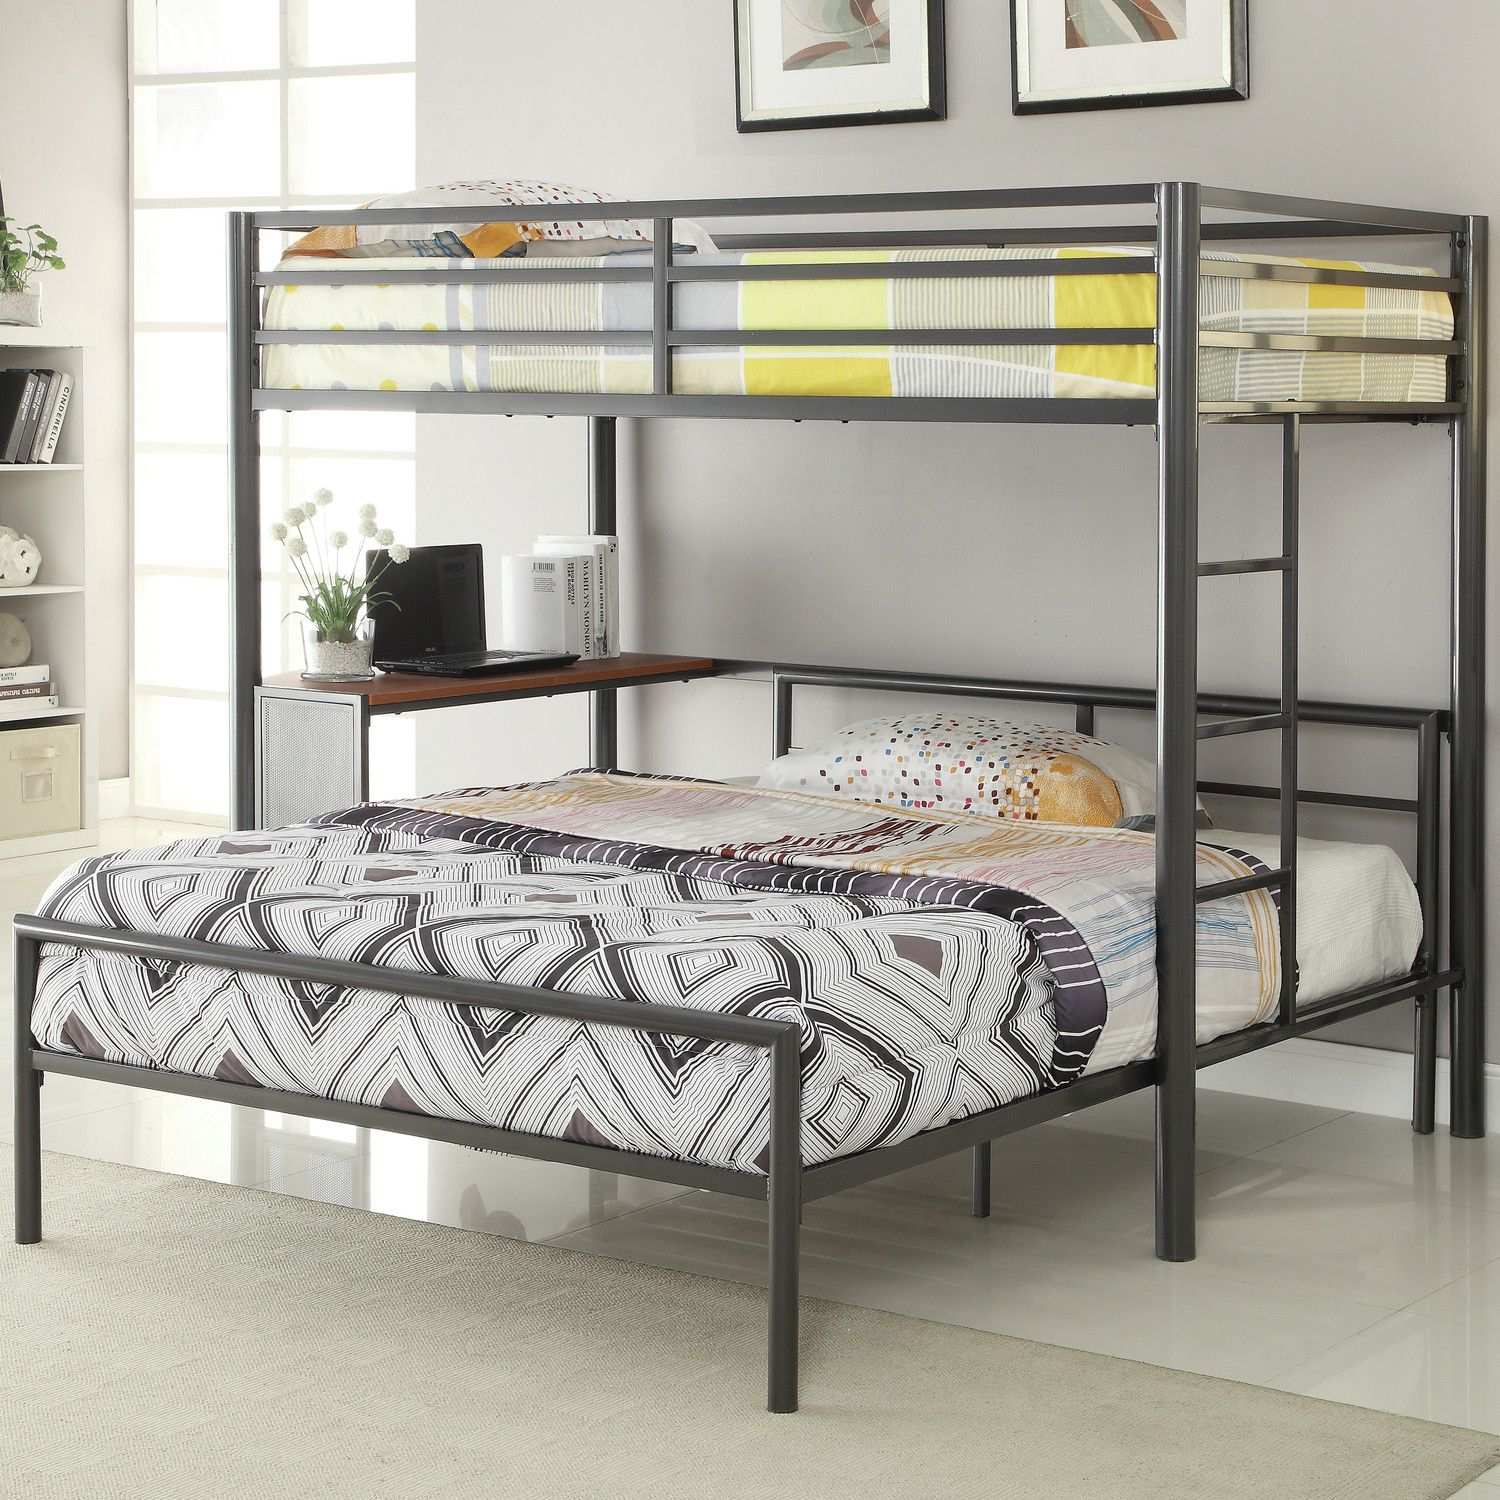 Loft bed boy room ideas  Pin by Betty Guiles on Bunk Bed Ideas  Pinterest  Bunk bed Loft